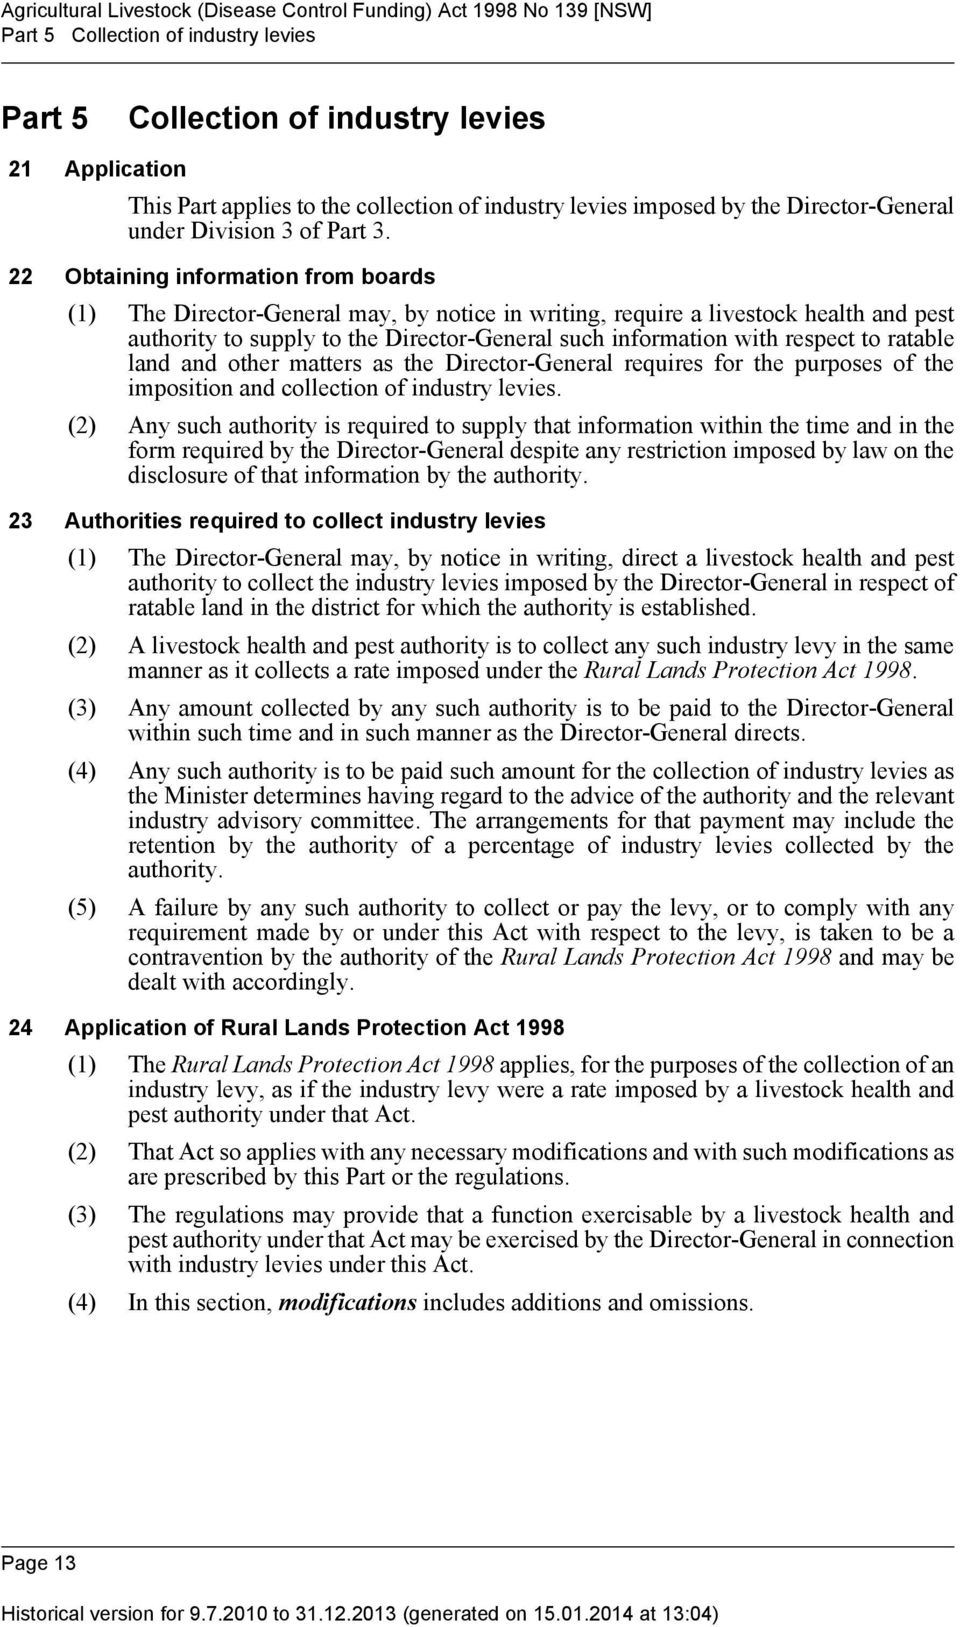 22 Obtaining information from boards (1) The Director-General may, by notice in writing, require a livestock health and pest authority to supply to the Director-General such information with respect